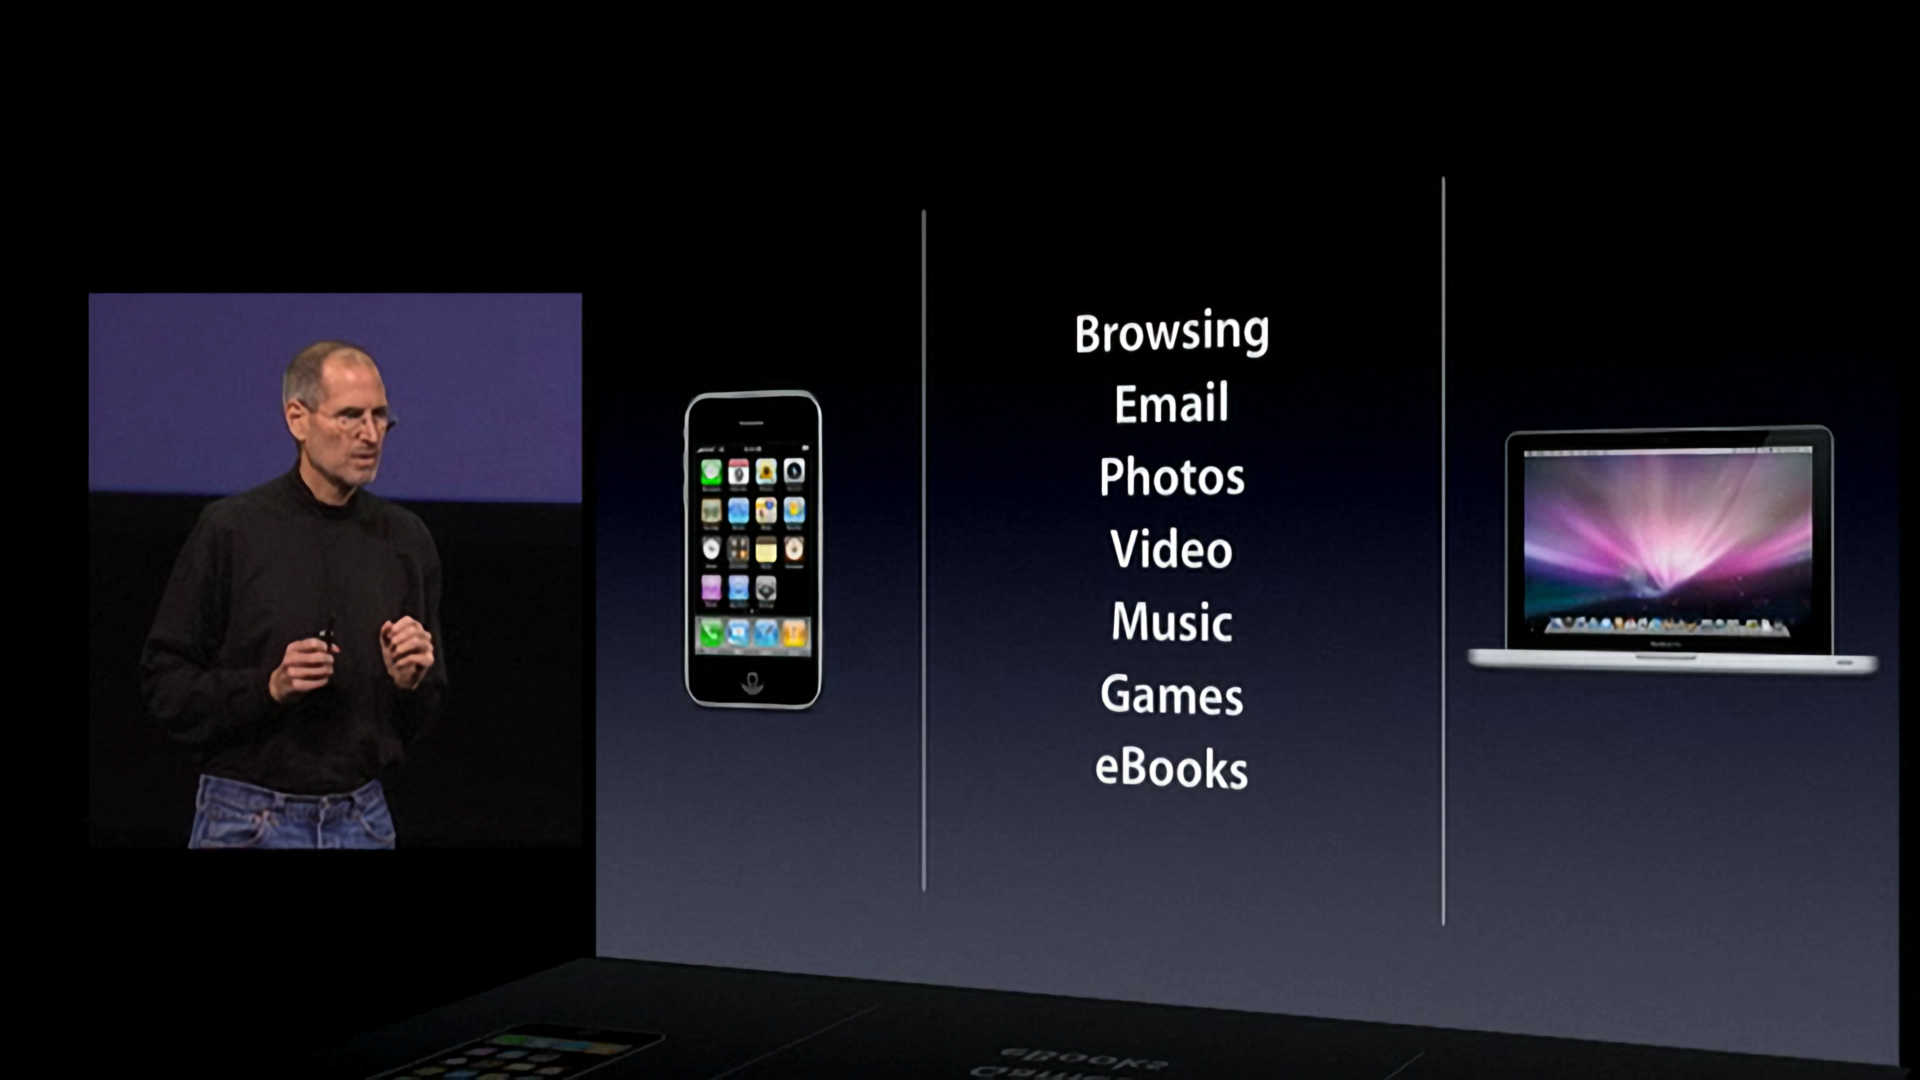 Jobs explained that a third category of device had to be 'far better at some key things.'